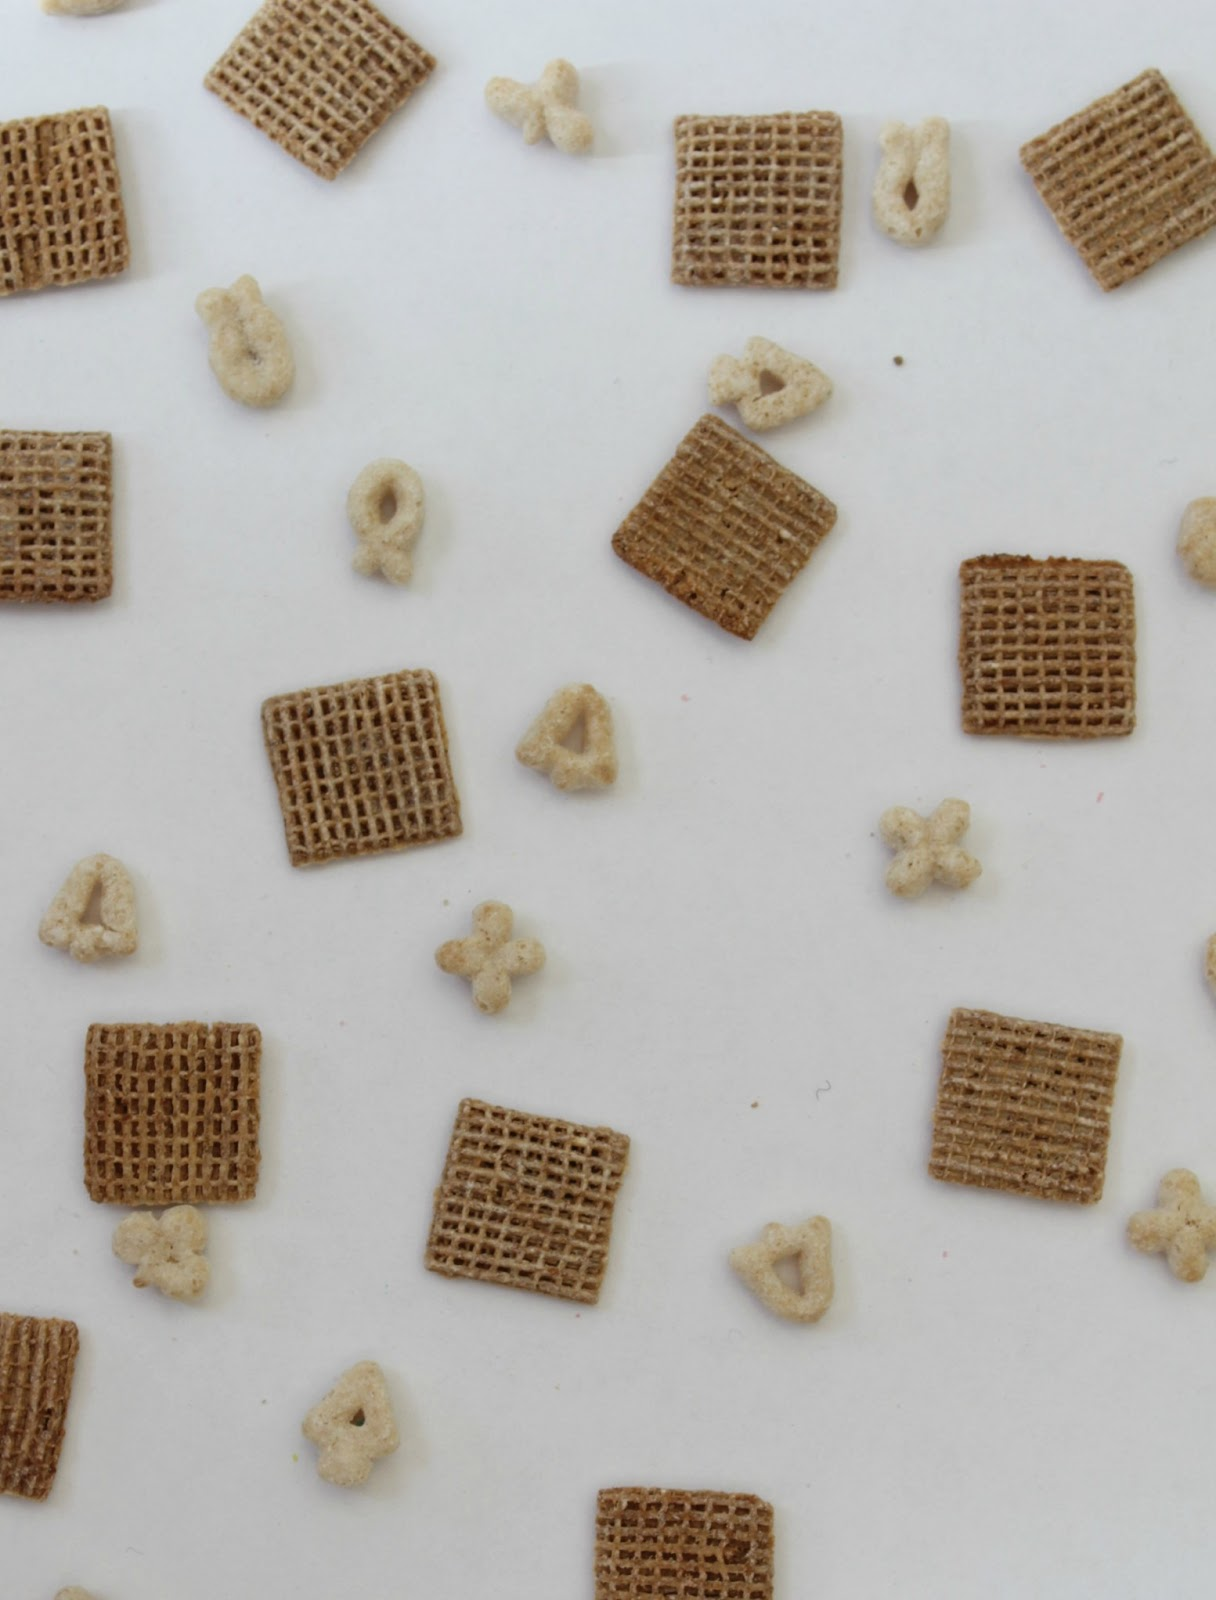 Food photography patterns